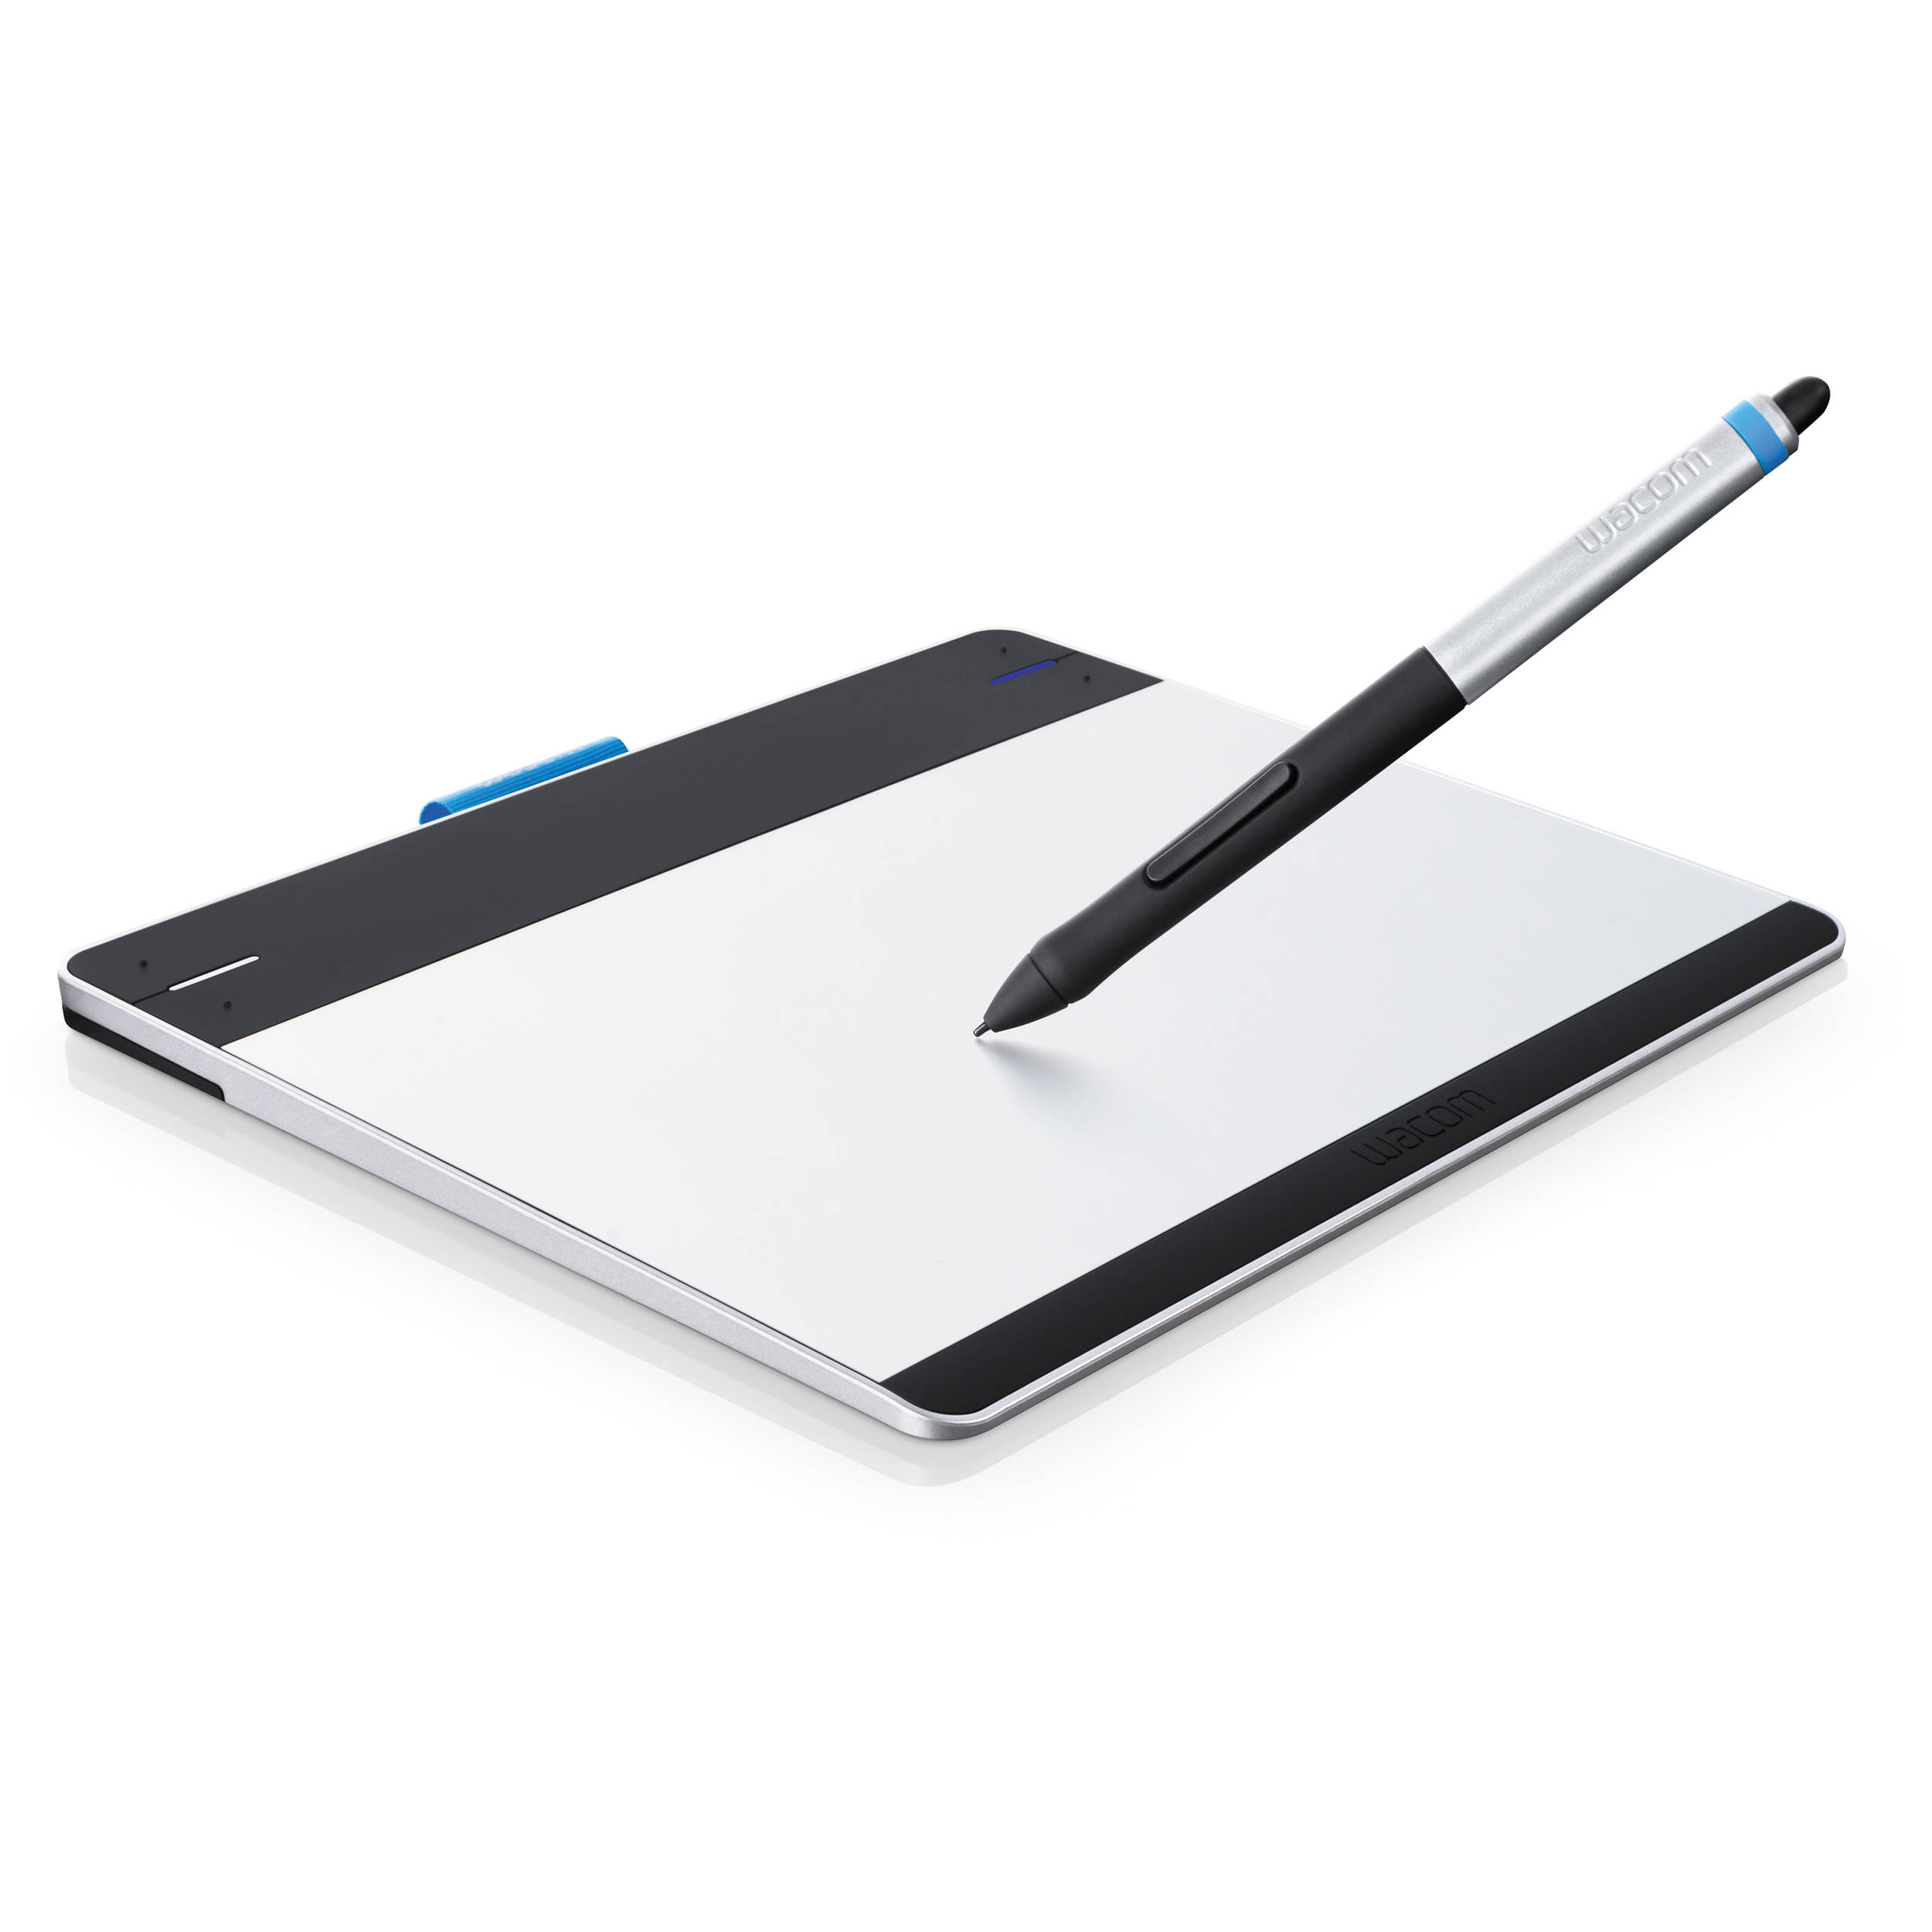 Wacom Intuos Pen & Touch Small tablet